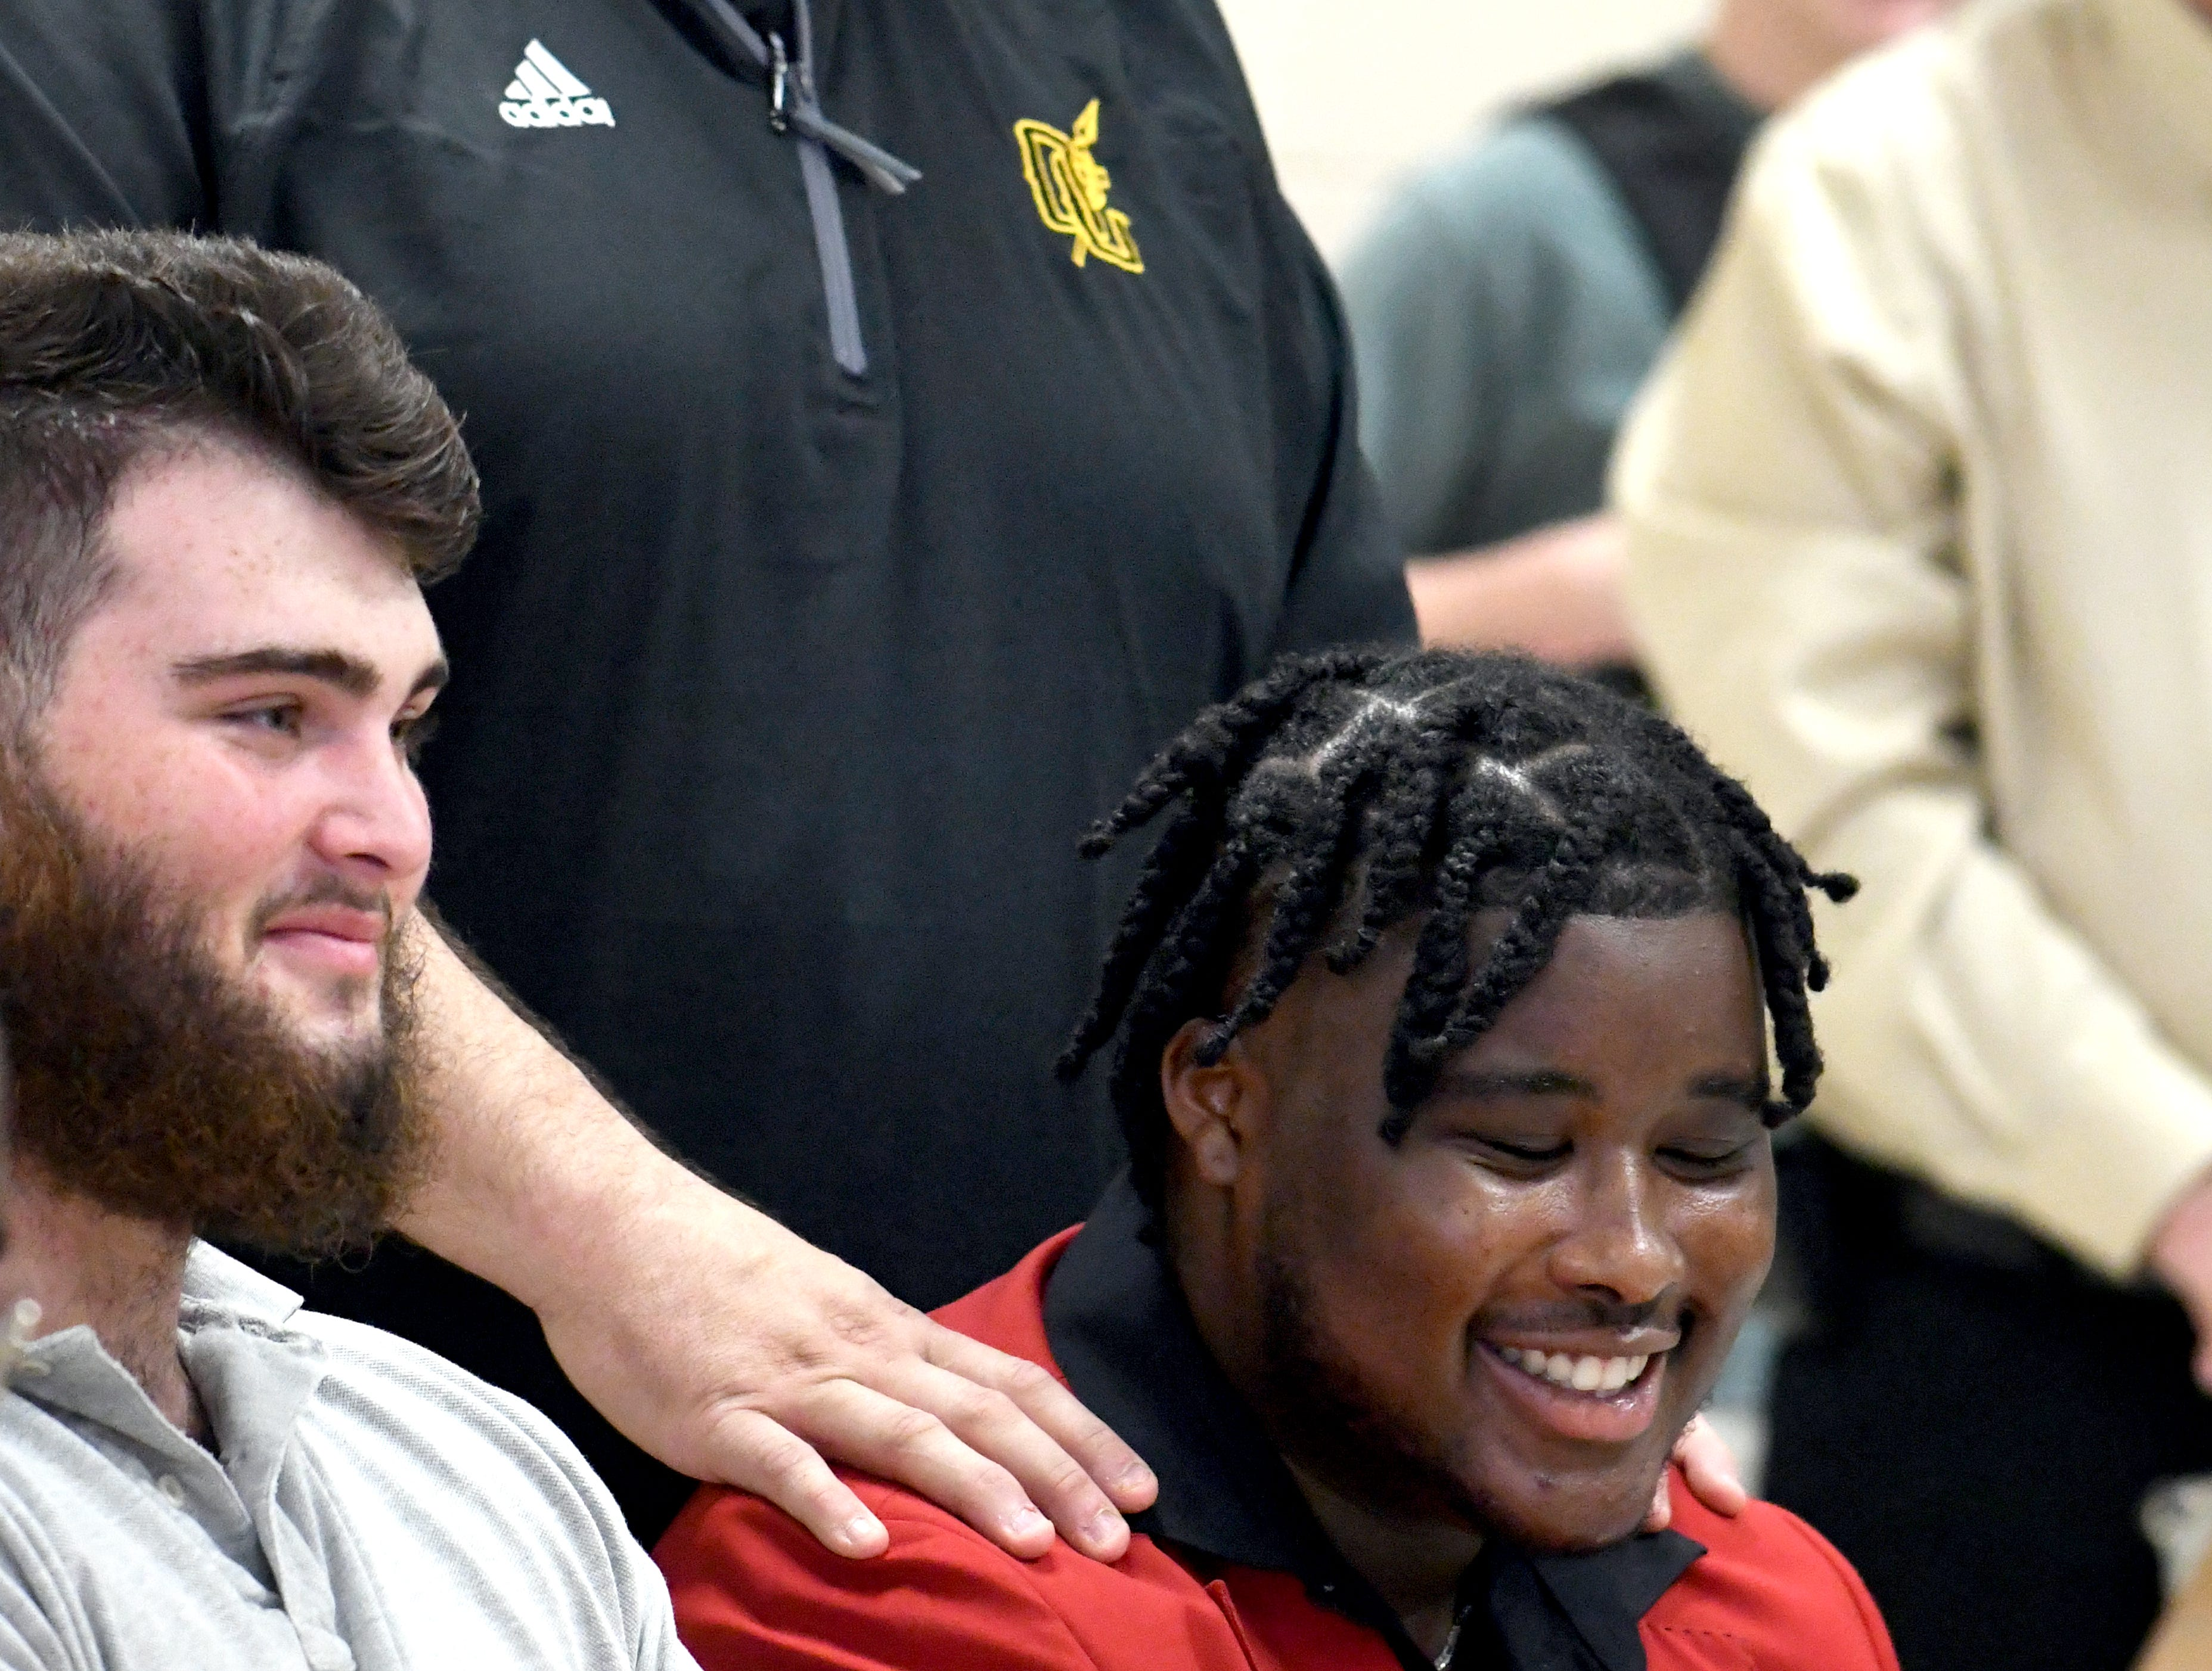 Oak Grove head football coach Drew Causey speaks about athlete Kaleb Carter during National Signing Day in Hattiesburg on Wednesday, February 6, 2019.